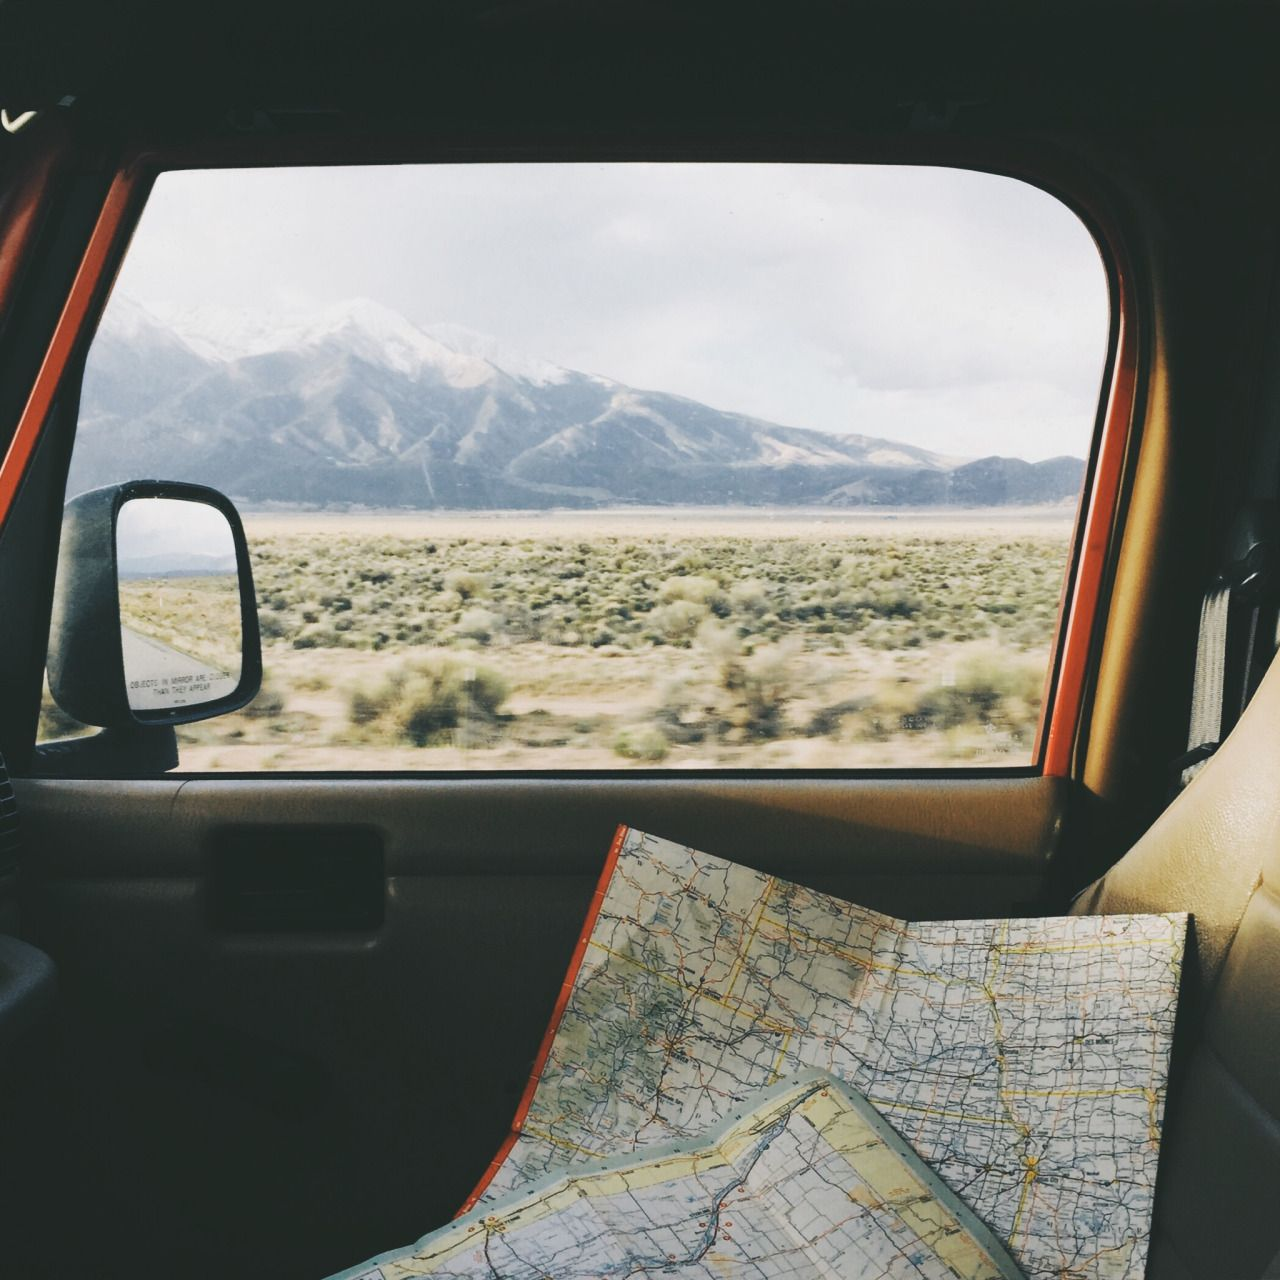 Us Road Trip Ideas: Road Trip Essentials, Travel